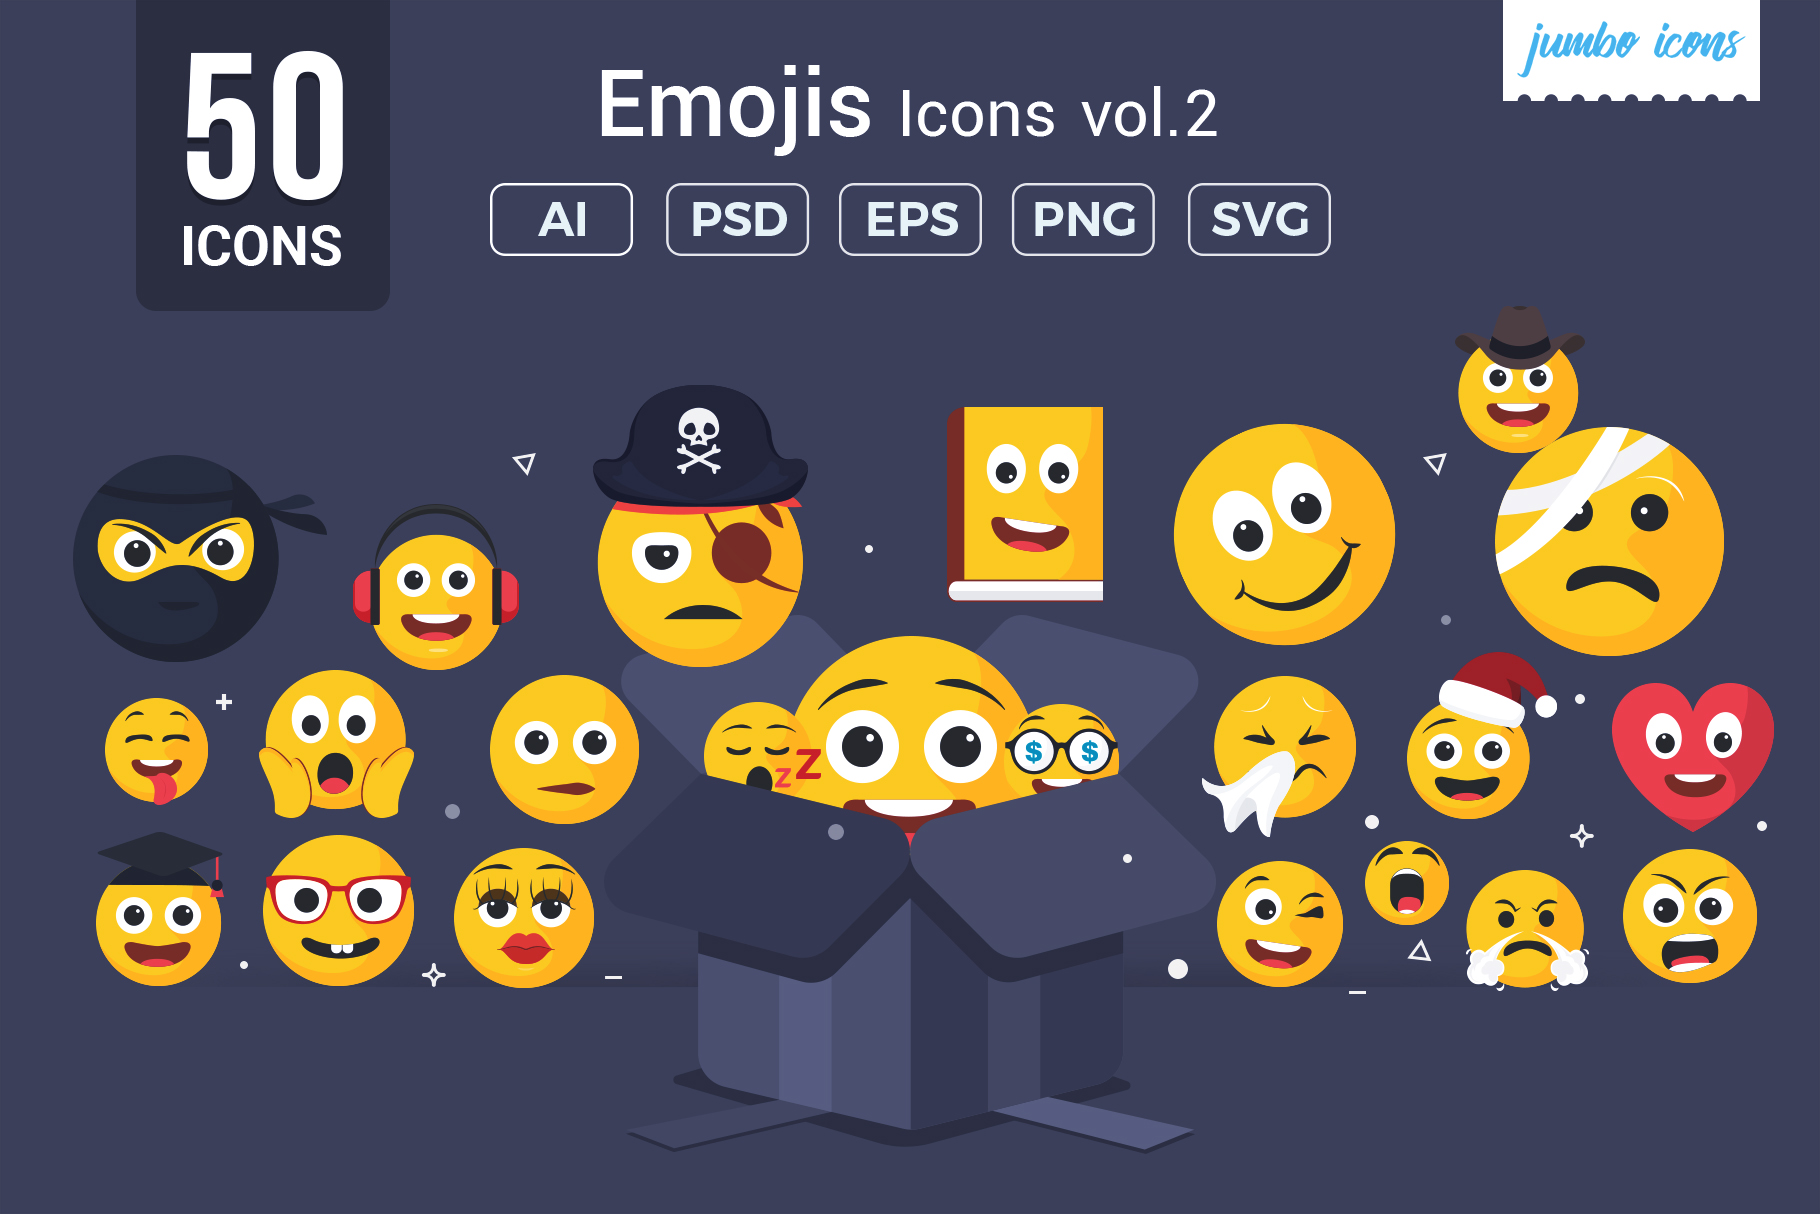 Download Free Emojis Smiley Vector Icons Graphic By Jumboicons Creative for Cricut Explore, Silhouette and other cutting machines.